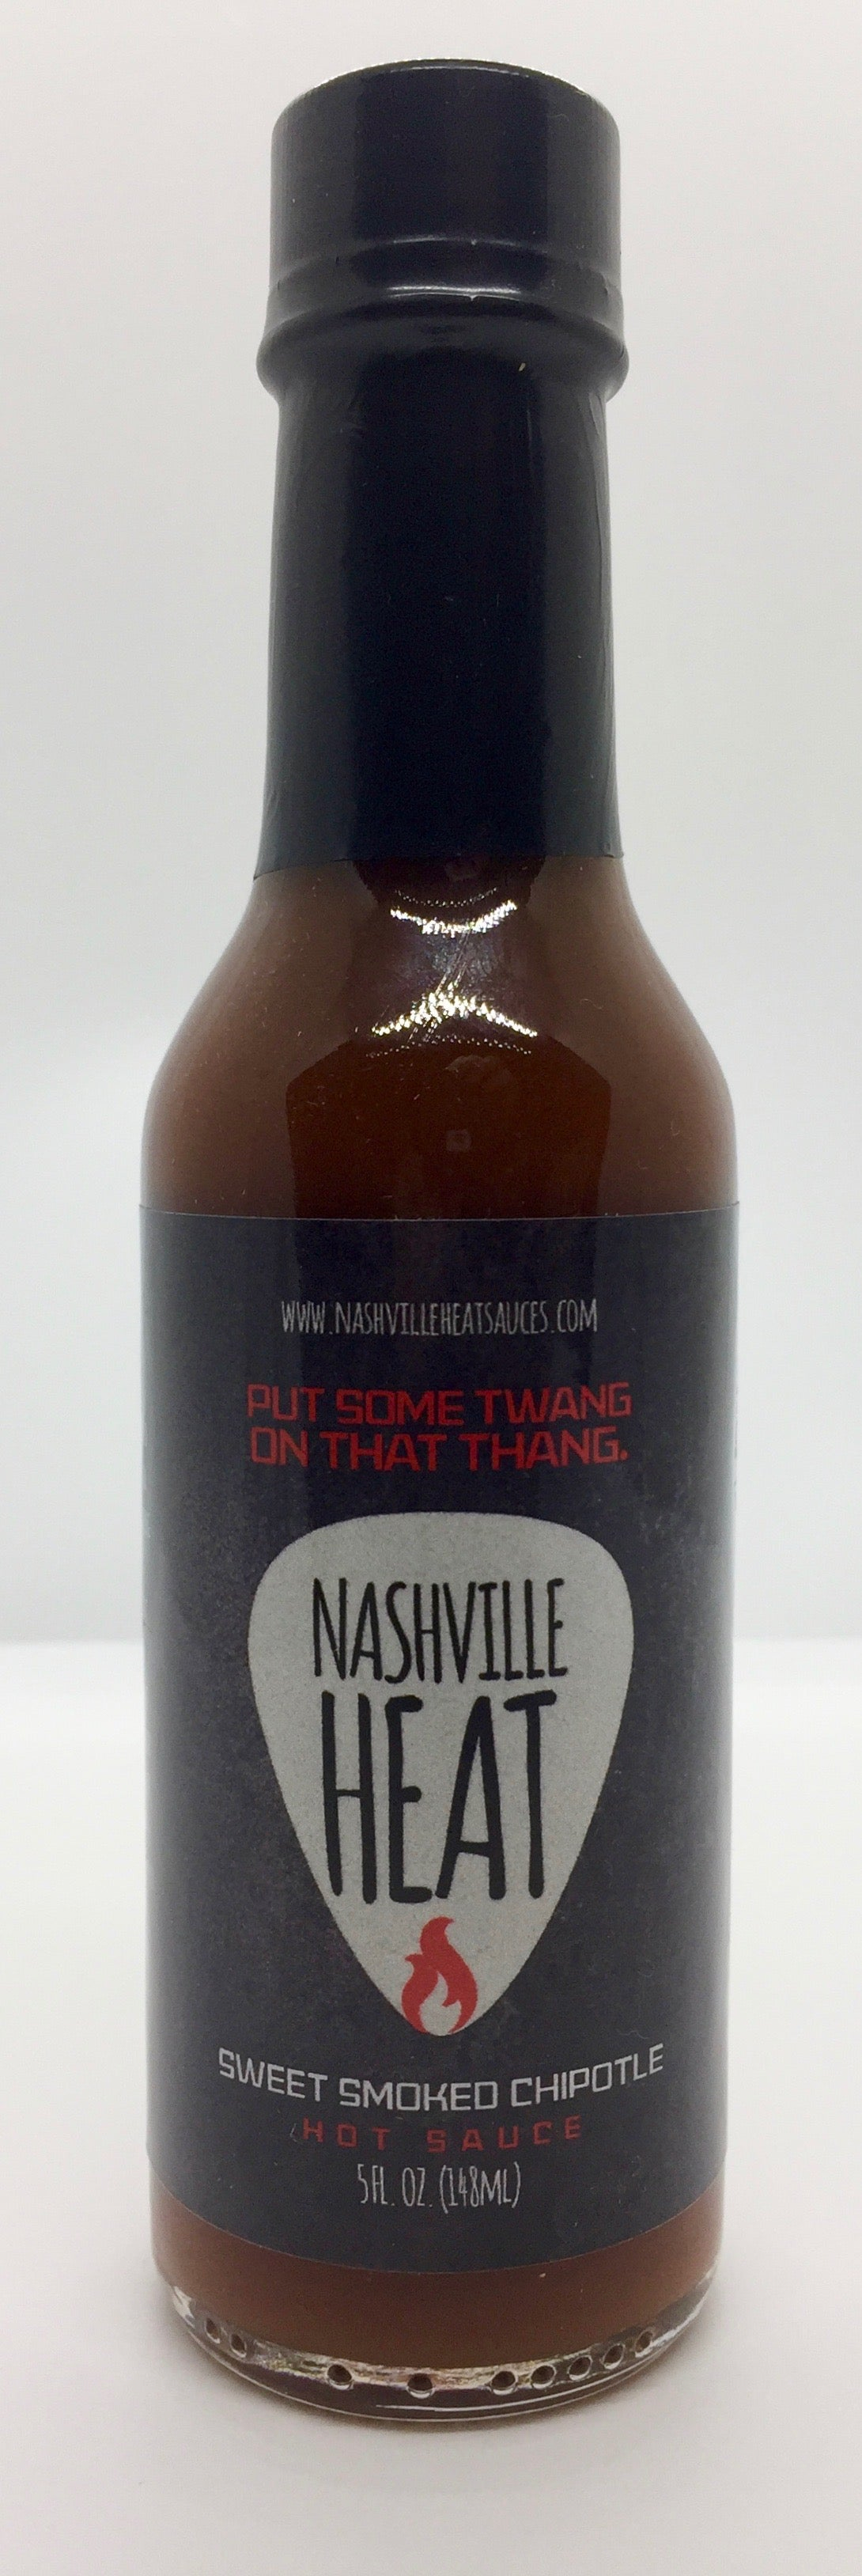 Nashville Heat Sweet Smoked Chipotle Hot Sauce 5oz